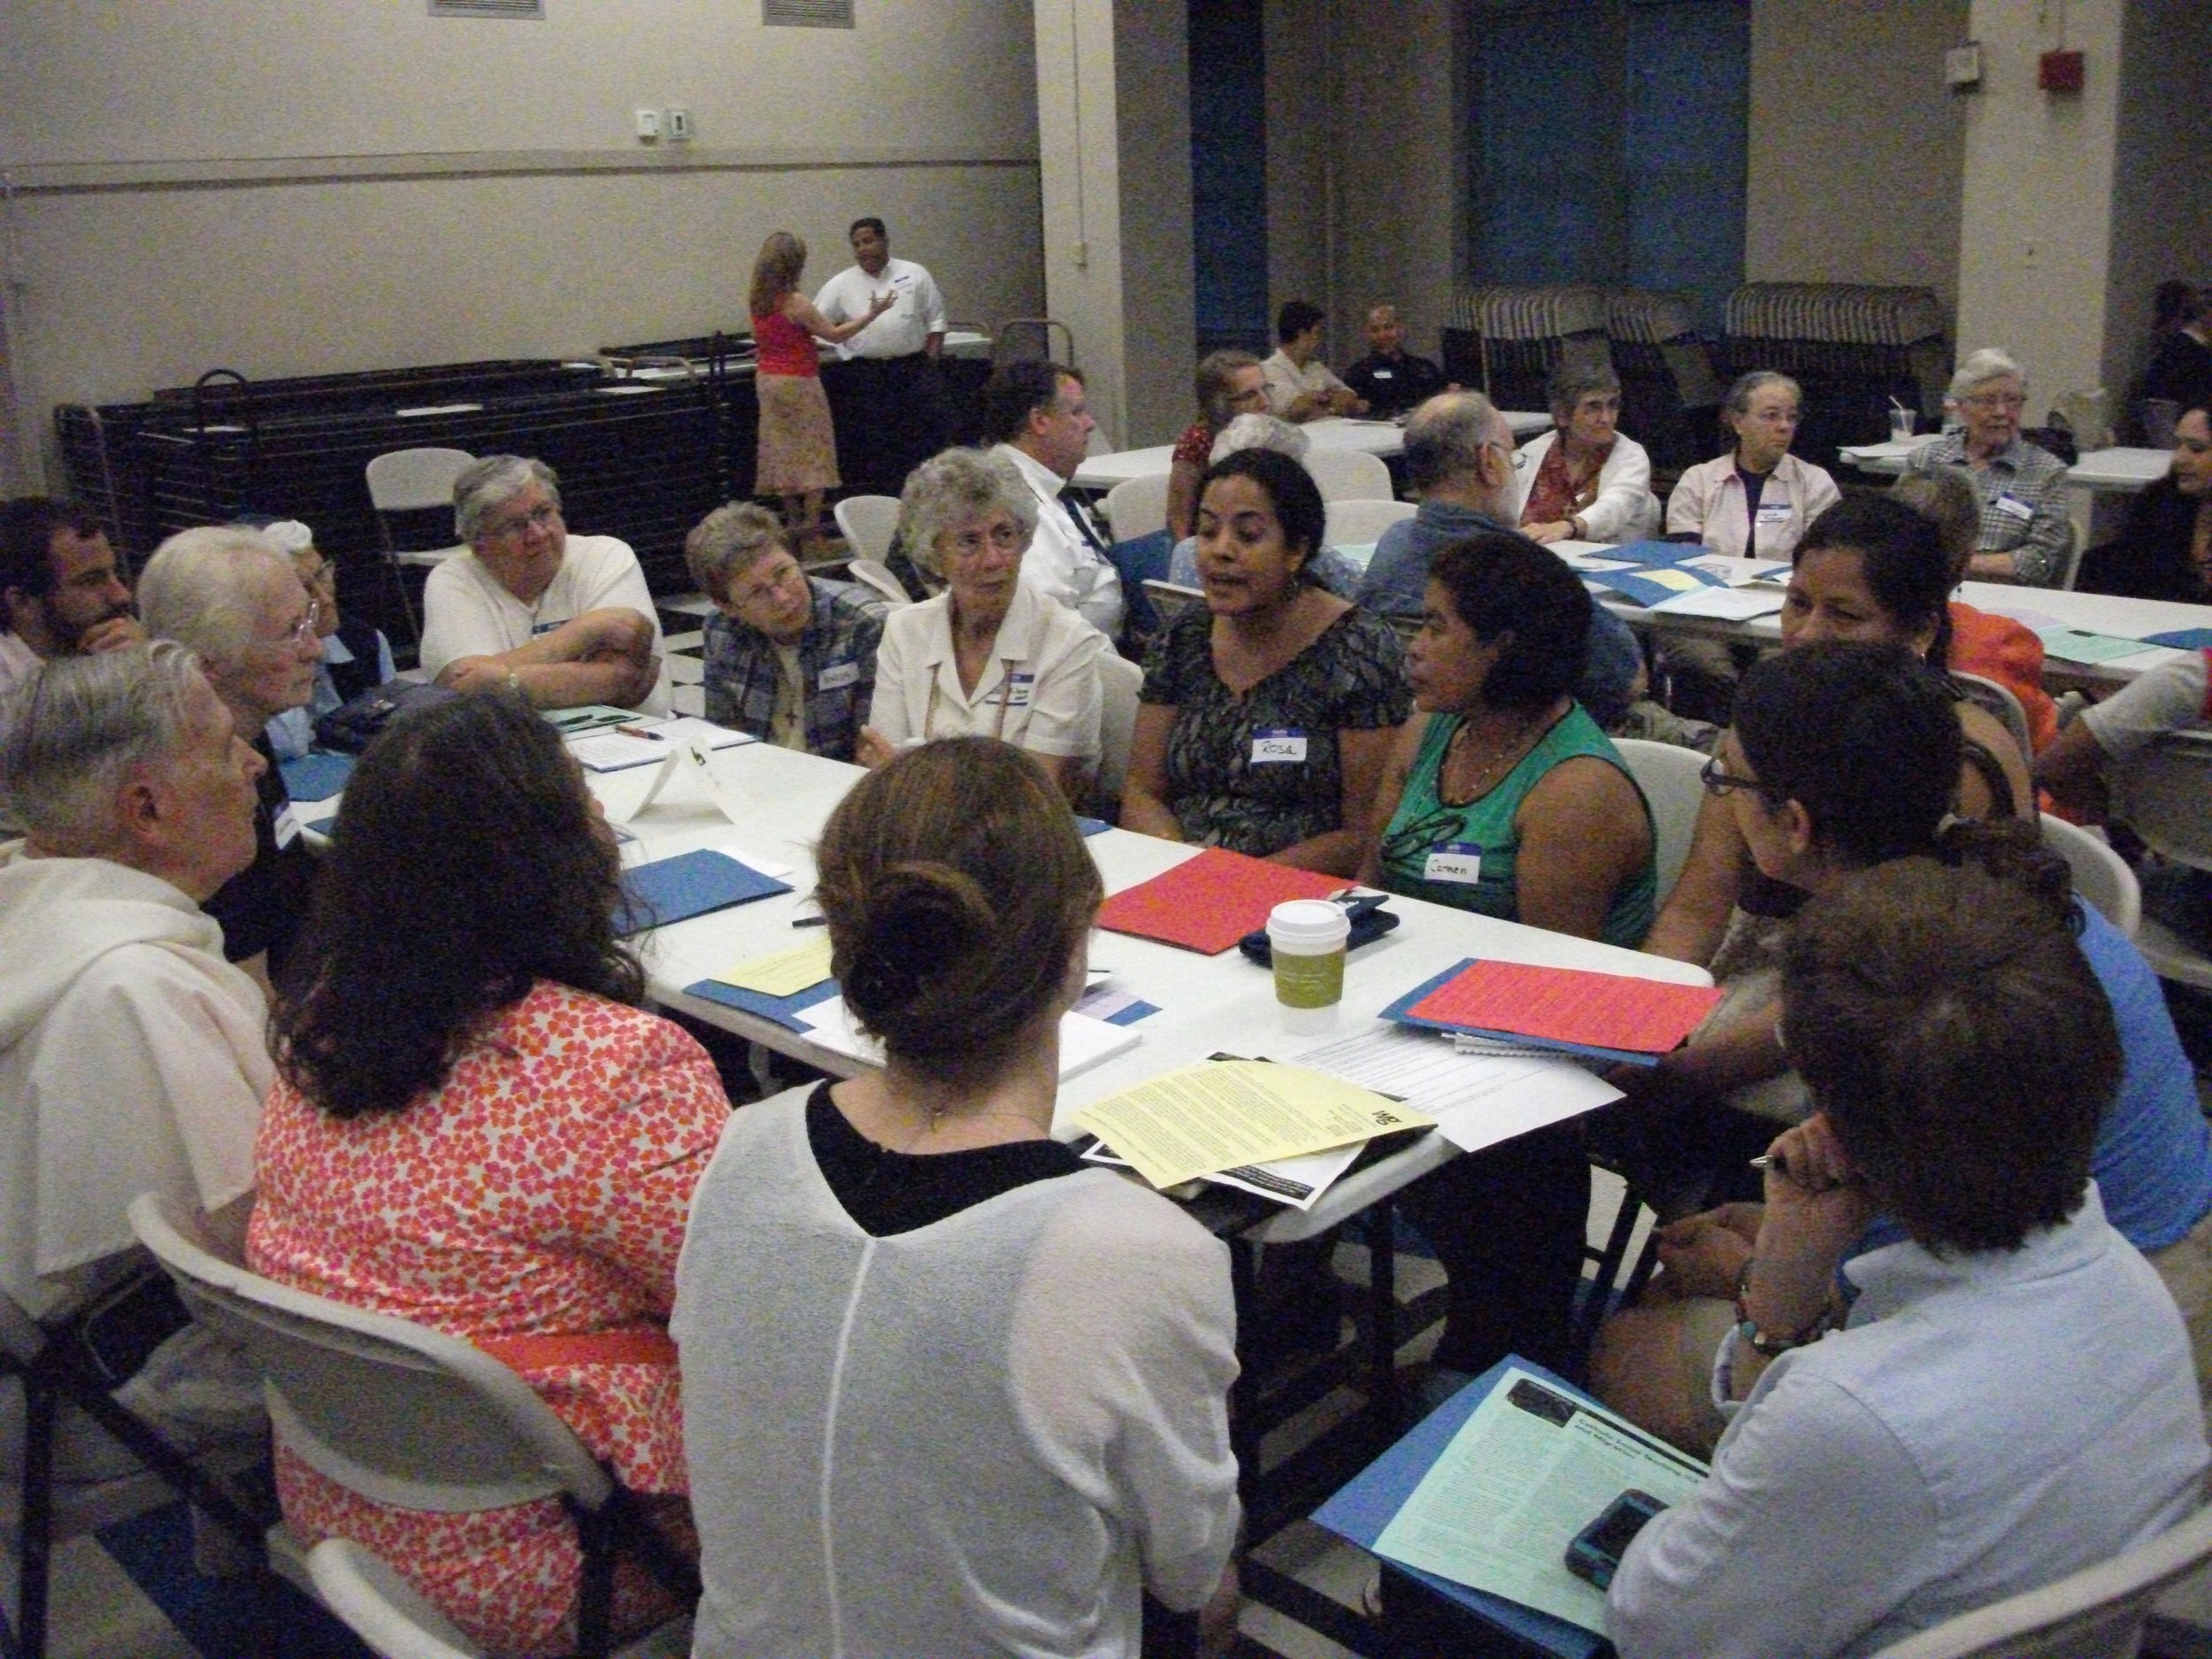 Catholic Teach-in on Migration at St. Anthony of Padua Church in New Orleans in August 2014 (photo by S. Weishar)